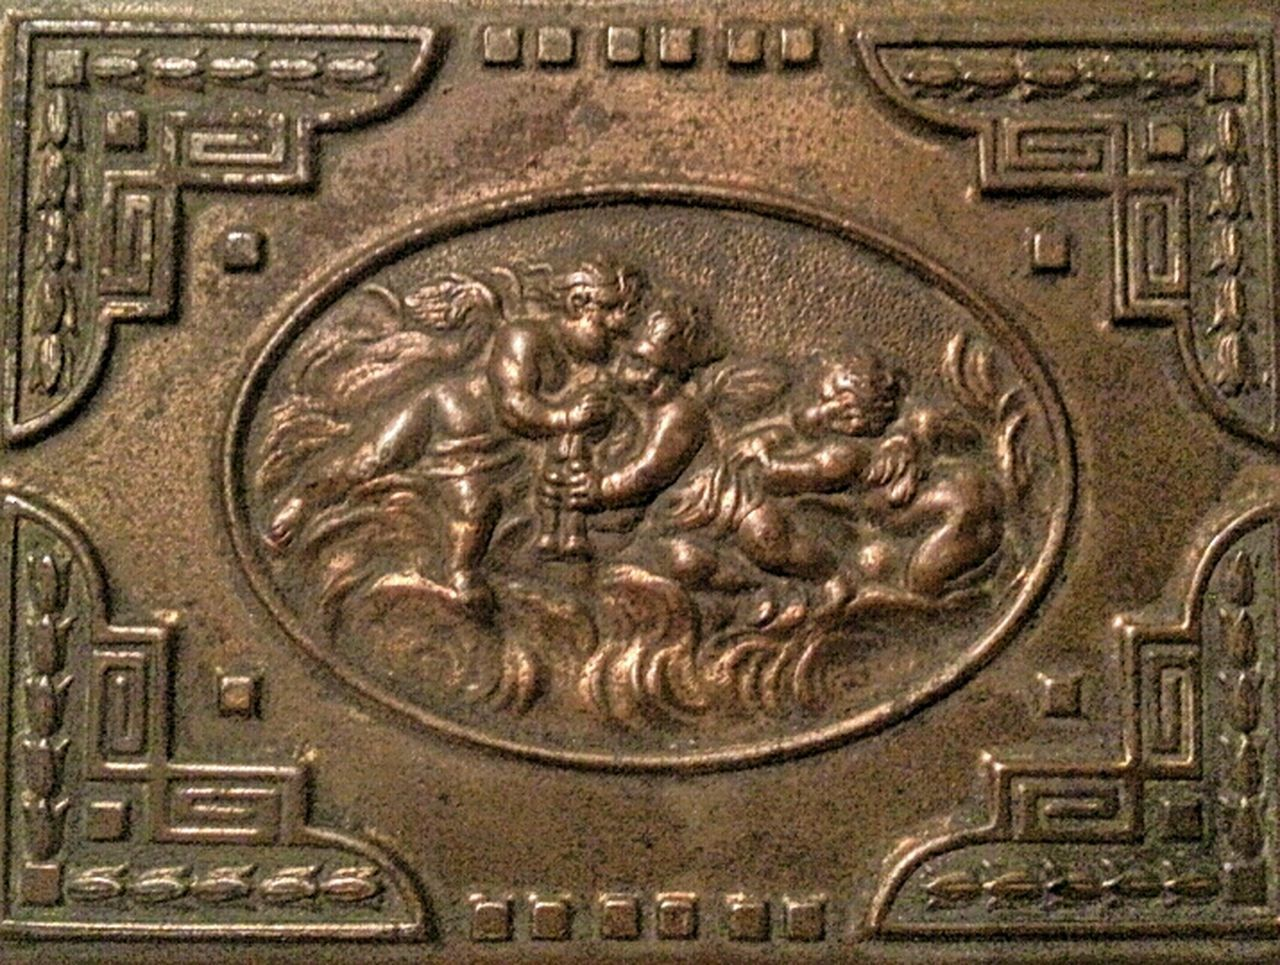 bas relief, backgrounds, close-up, full frame, no people, gold colored, outdoors, day